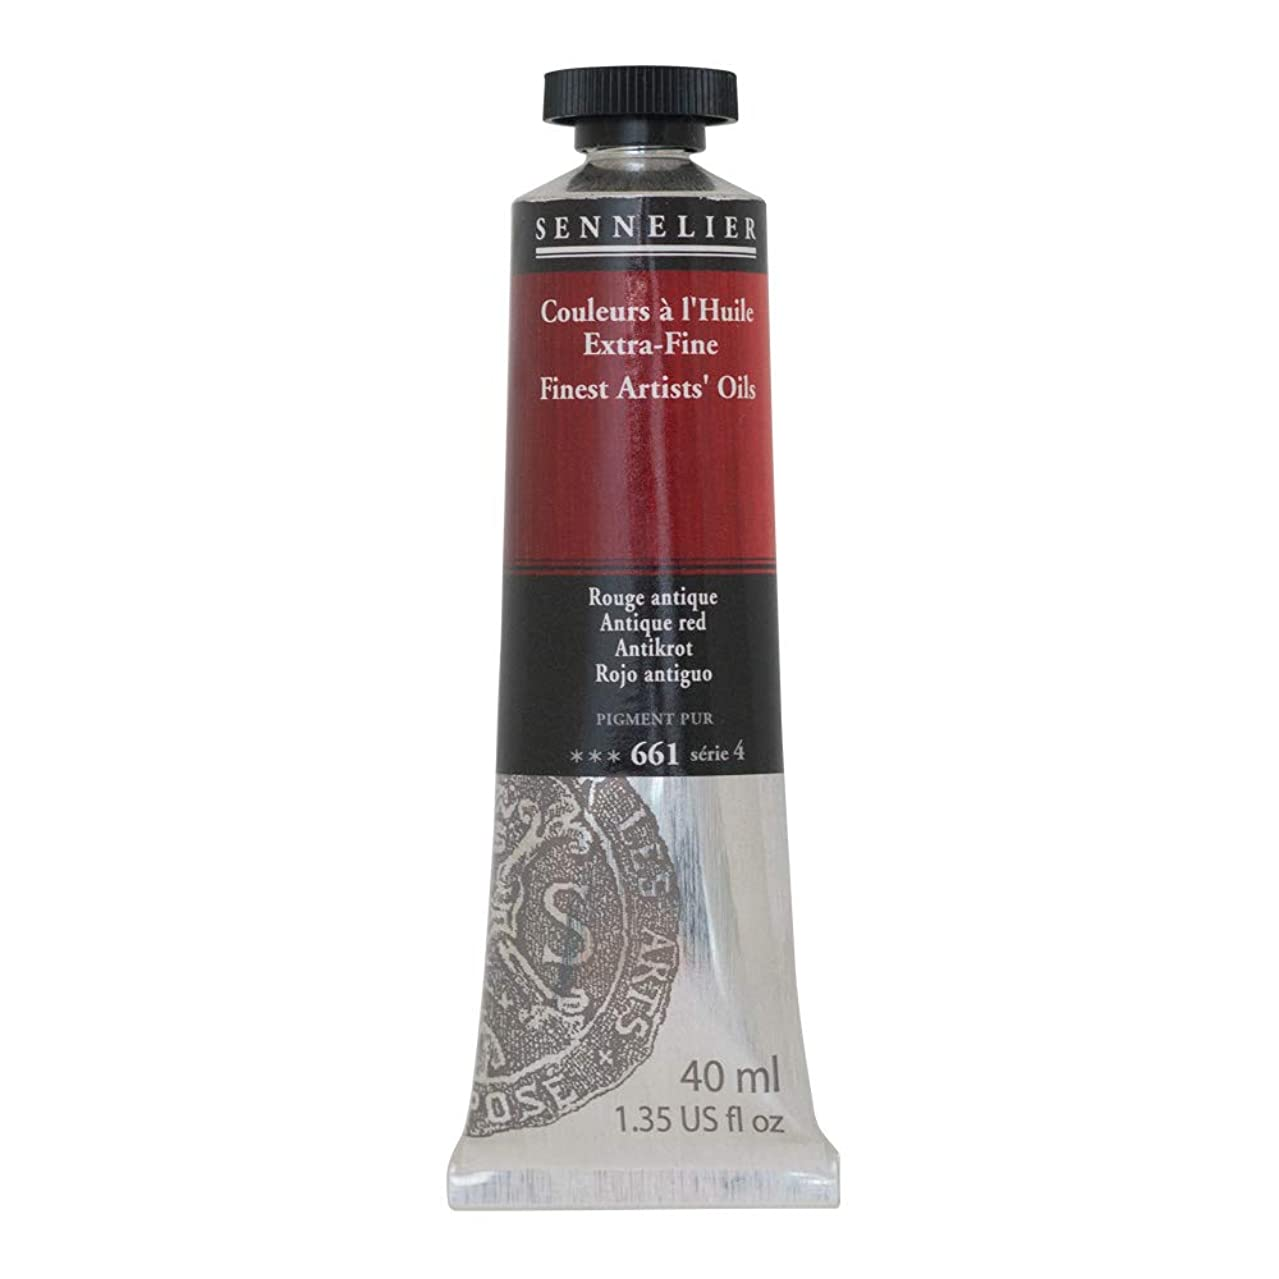 SENNELIER Artists' Extra Fine Oil, 40ml Tube, Series 4, Antique Red, (10-130411-661)